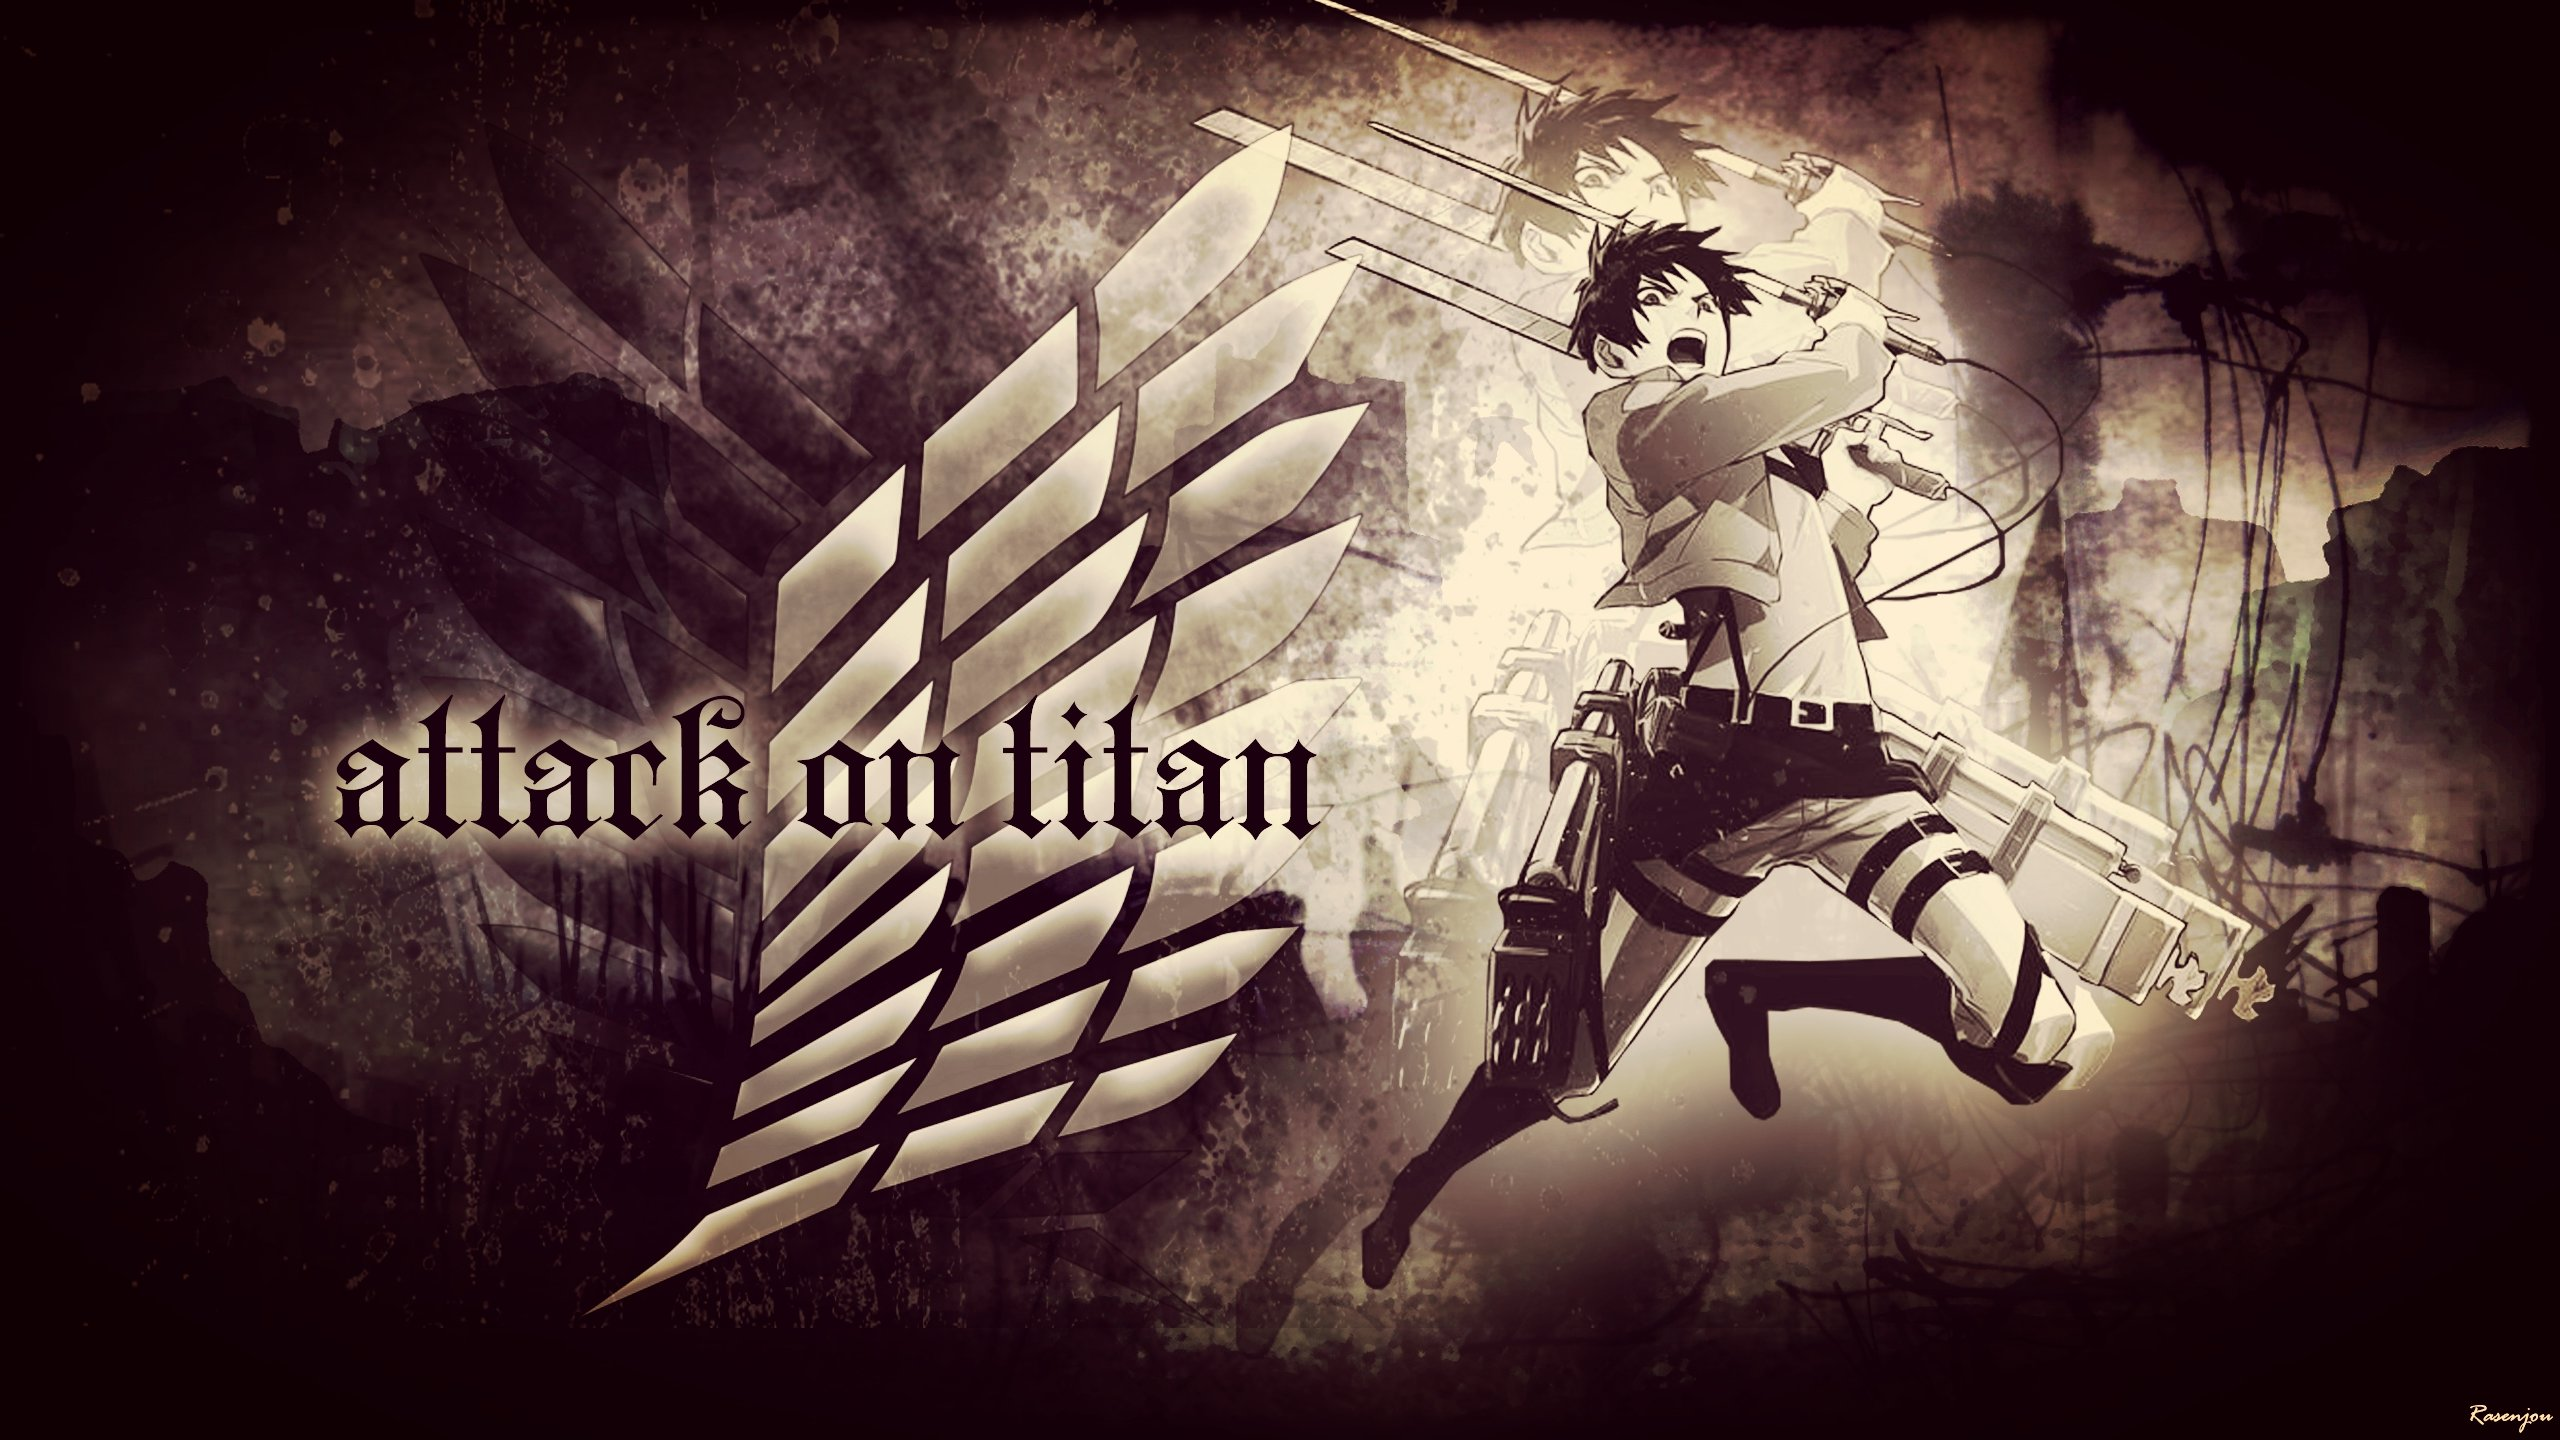 Attack On Titan Wallpapers 2560x1440 Desktop Backgrounds